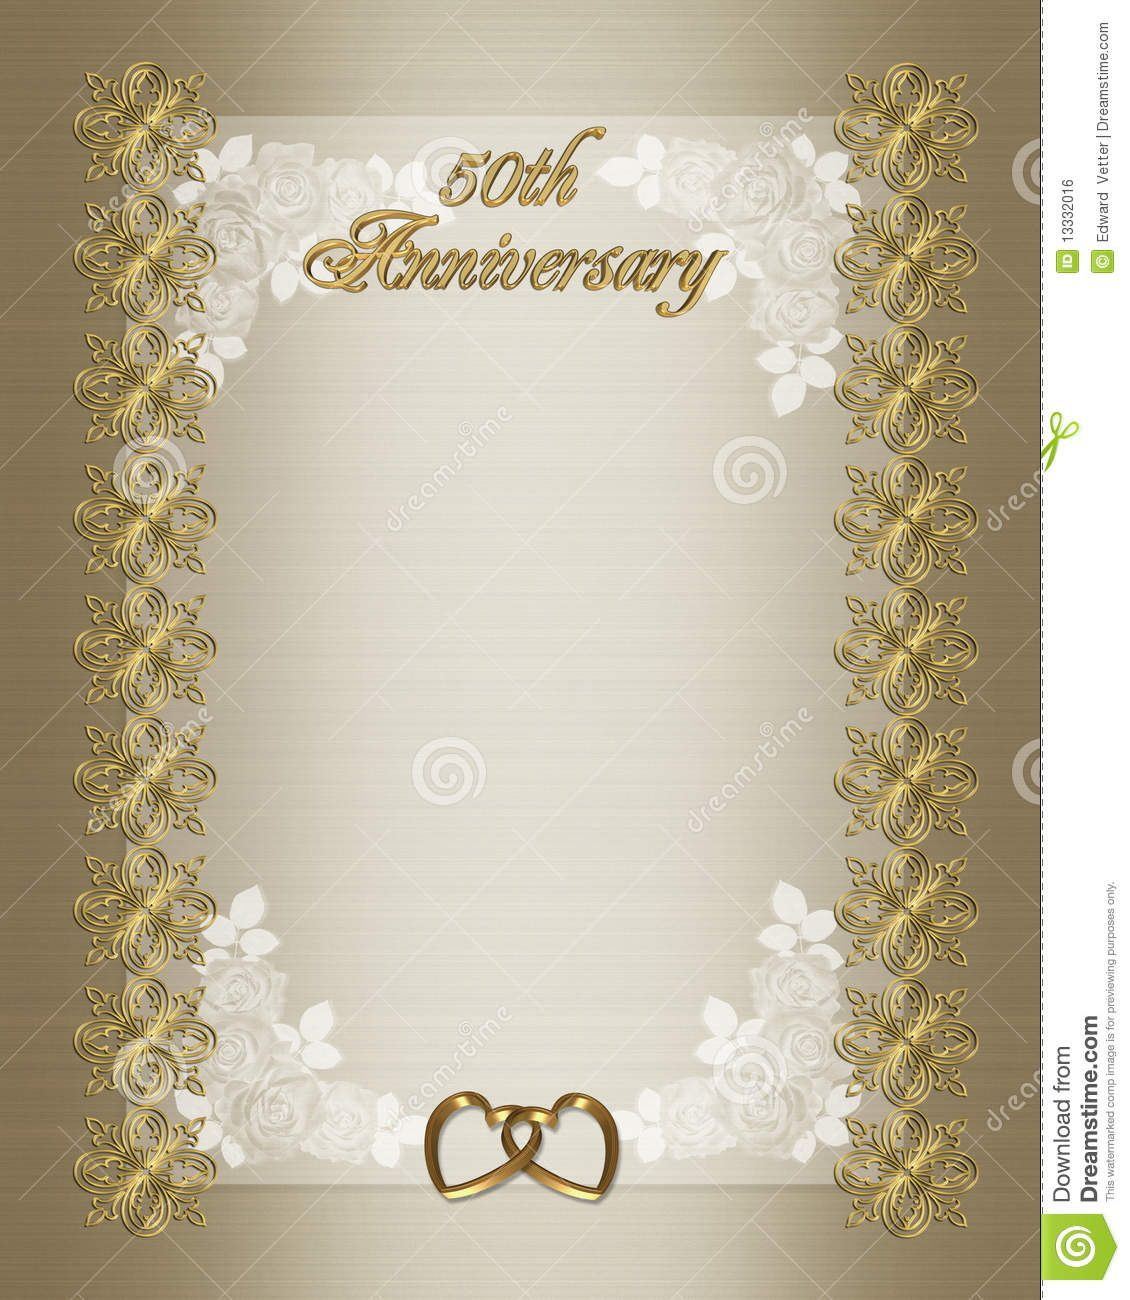 004 Awful 50th Wedding Anniversary Invitation Template Design  Templates Card Sample GoldenFull